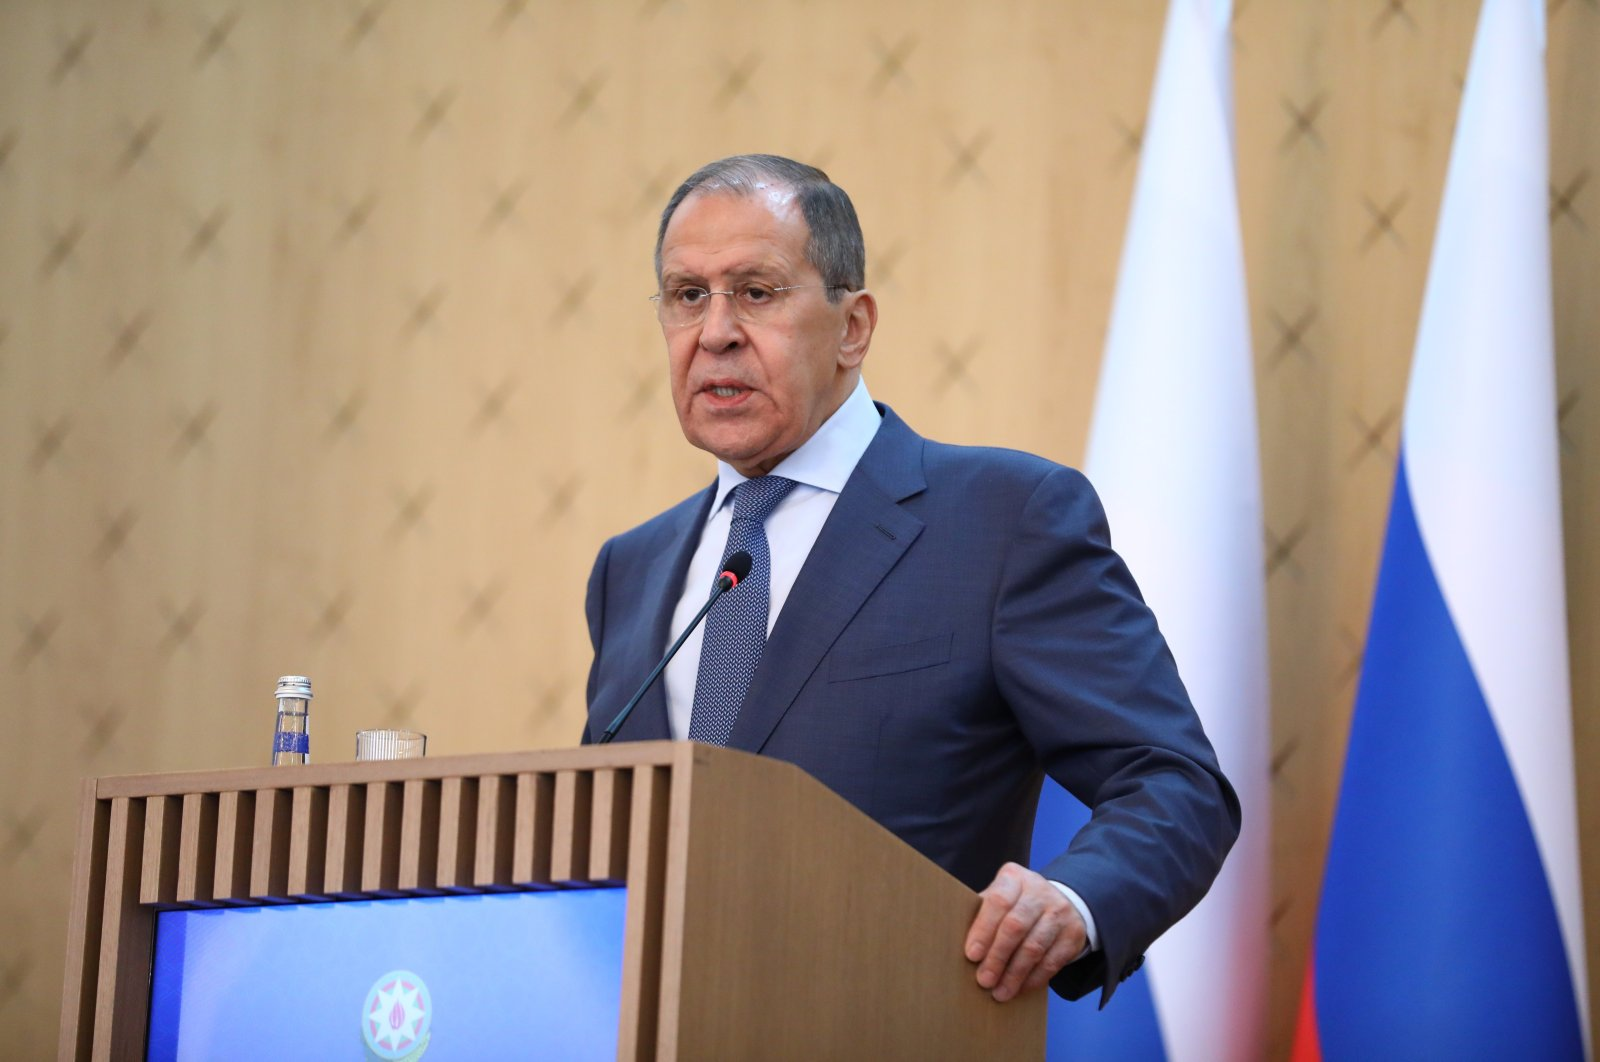 Russia's Foreign Minister Sergey Lavrov speaks during a joint news conference with Azerbaijan's Foreign Minister Jeyhun Bayramov following their meeting in Baku, Azerbaijan, May 11, 2021. (Reuters Photo)